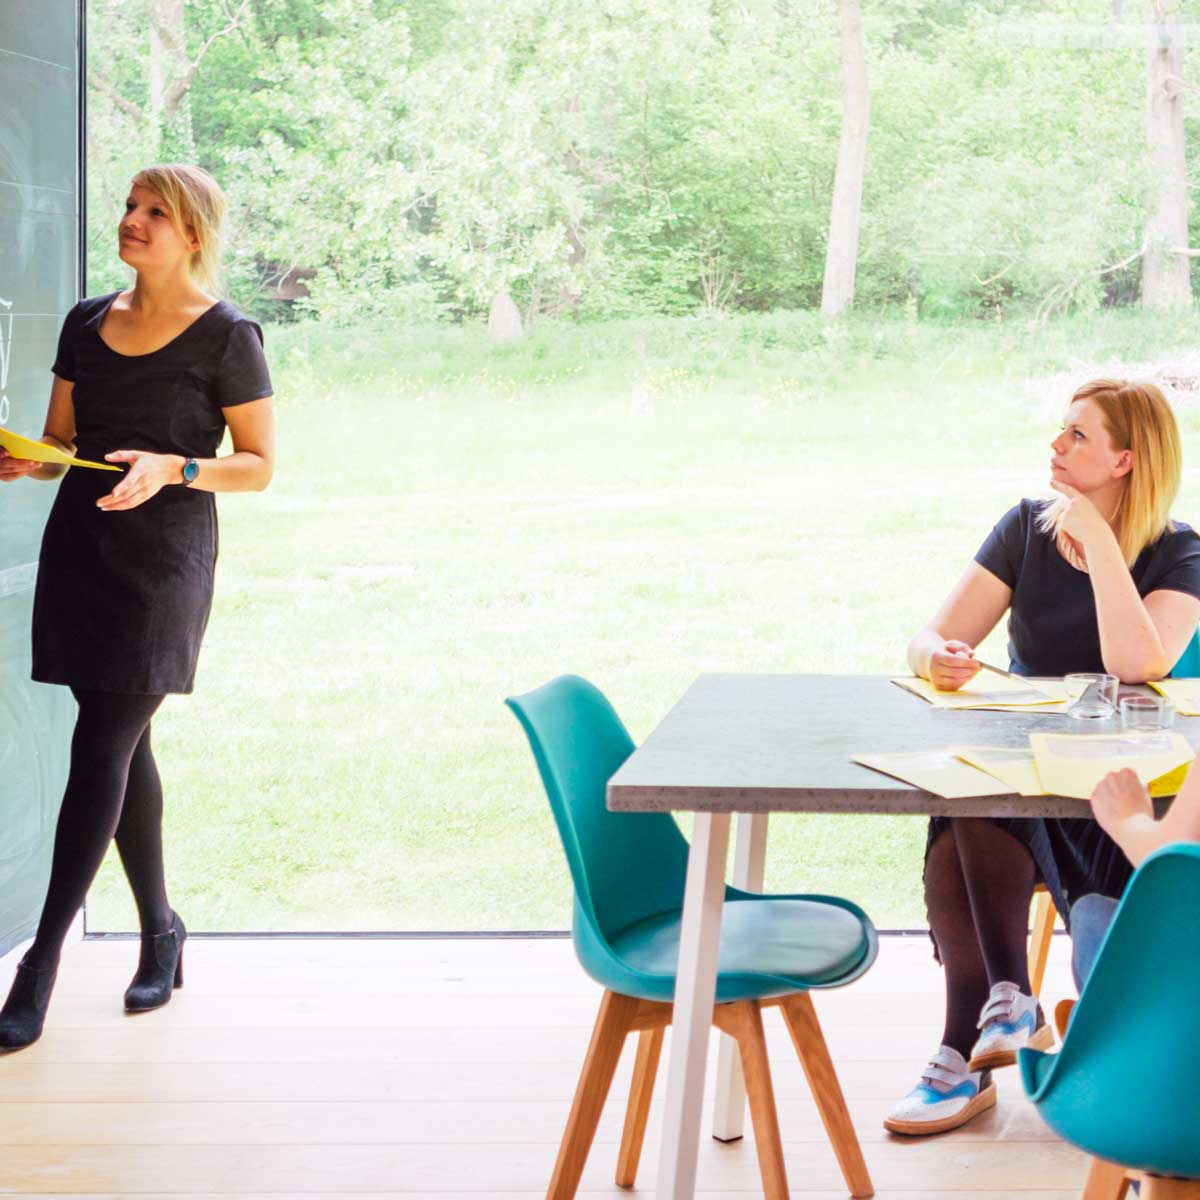 business meeting of a female startup - room with daylight, real people lifestyle